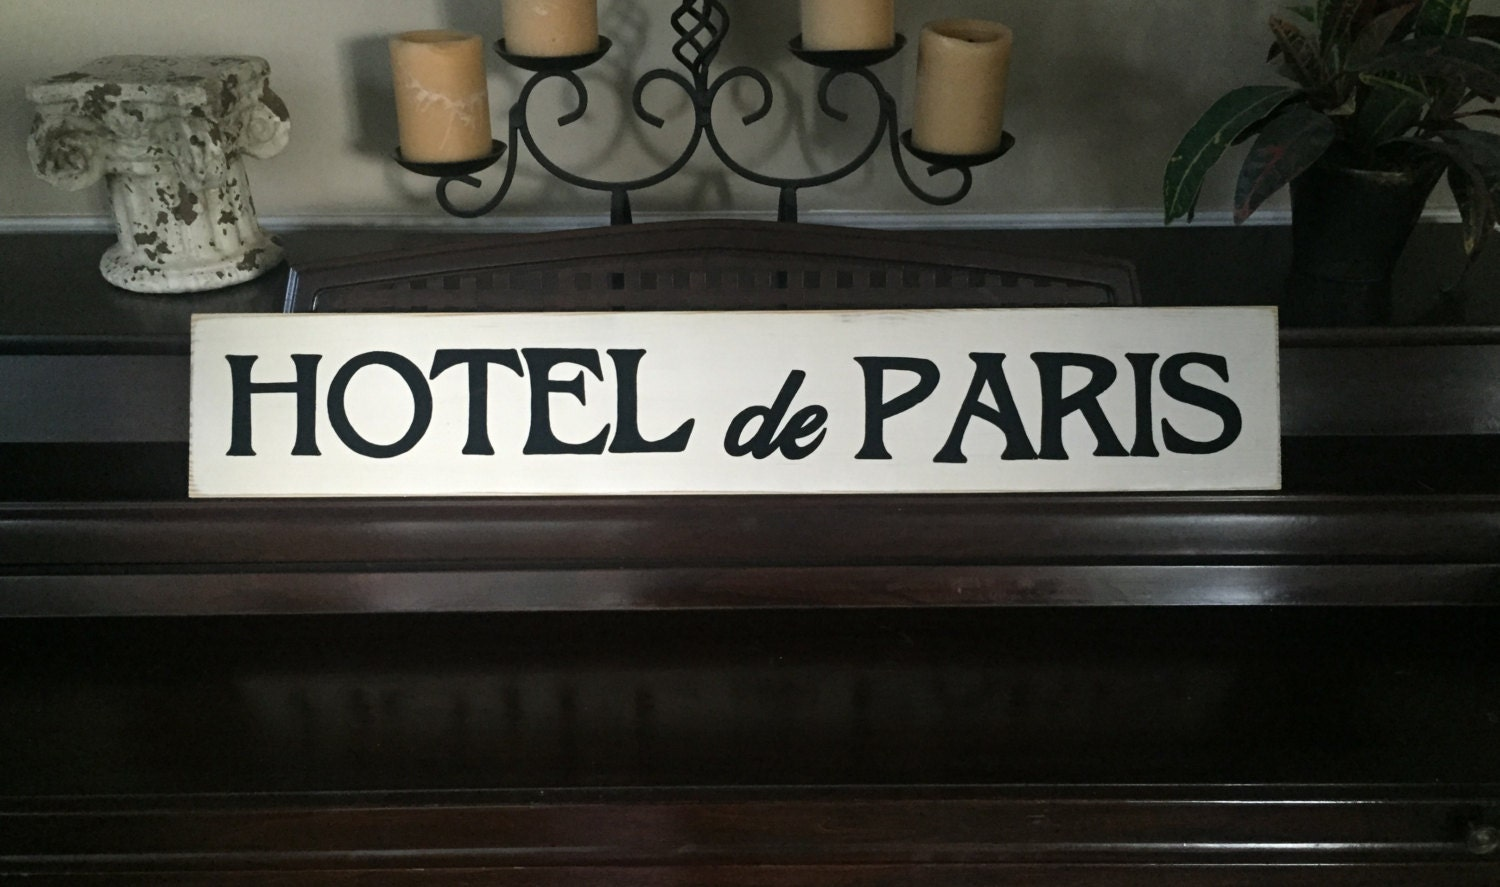 Hotel de paris french country sign plaque wall decor apartment for Hotel wall decor